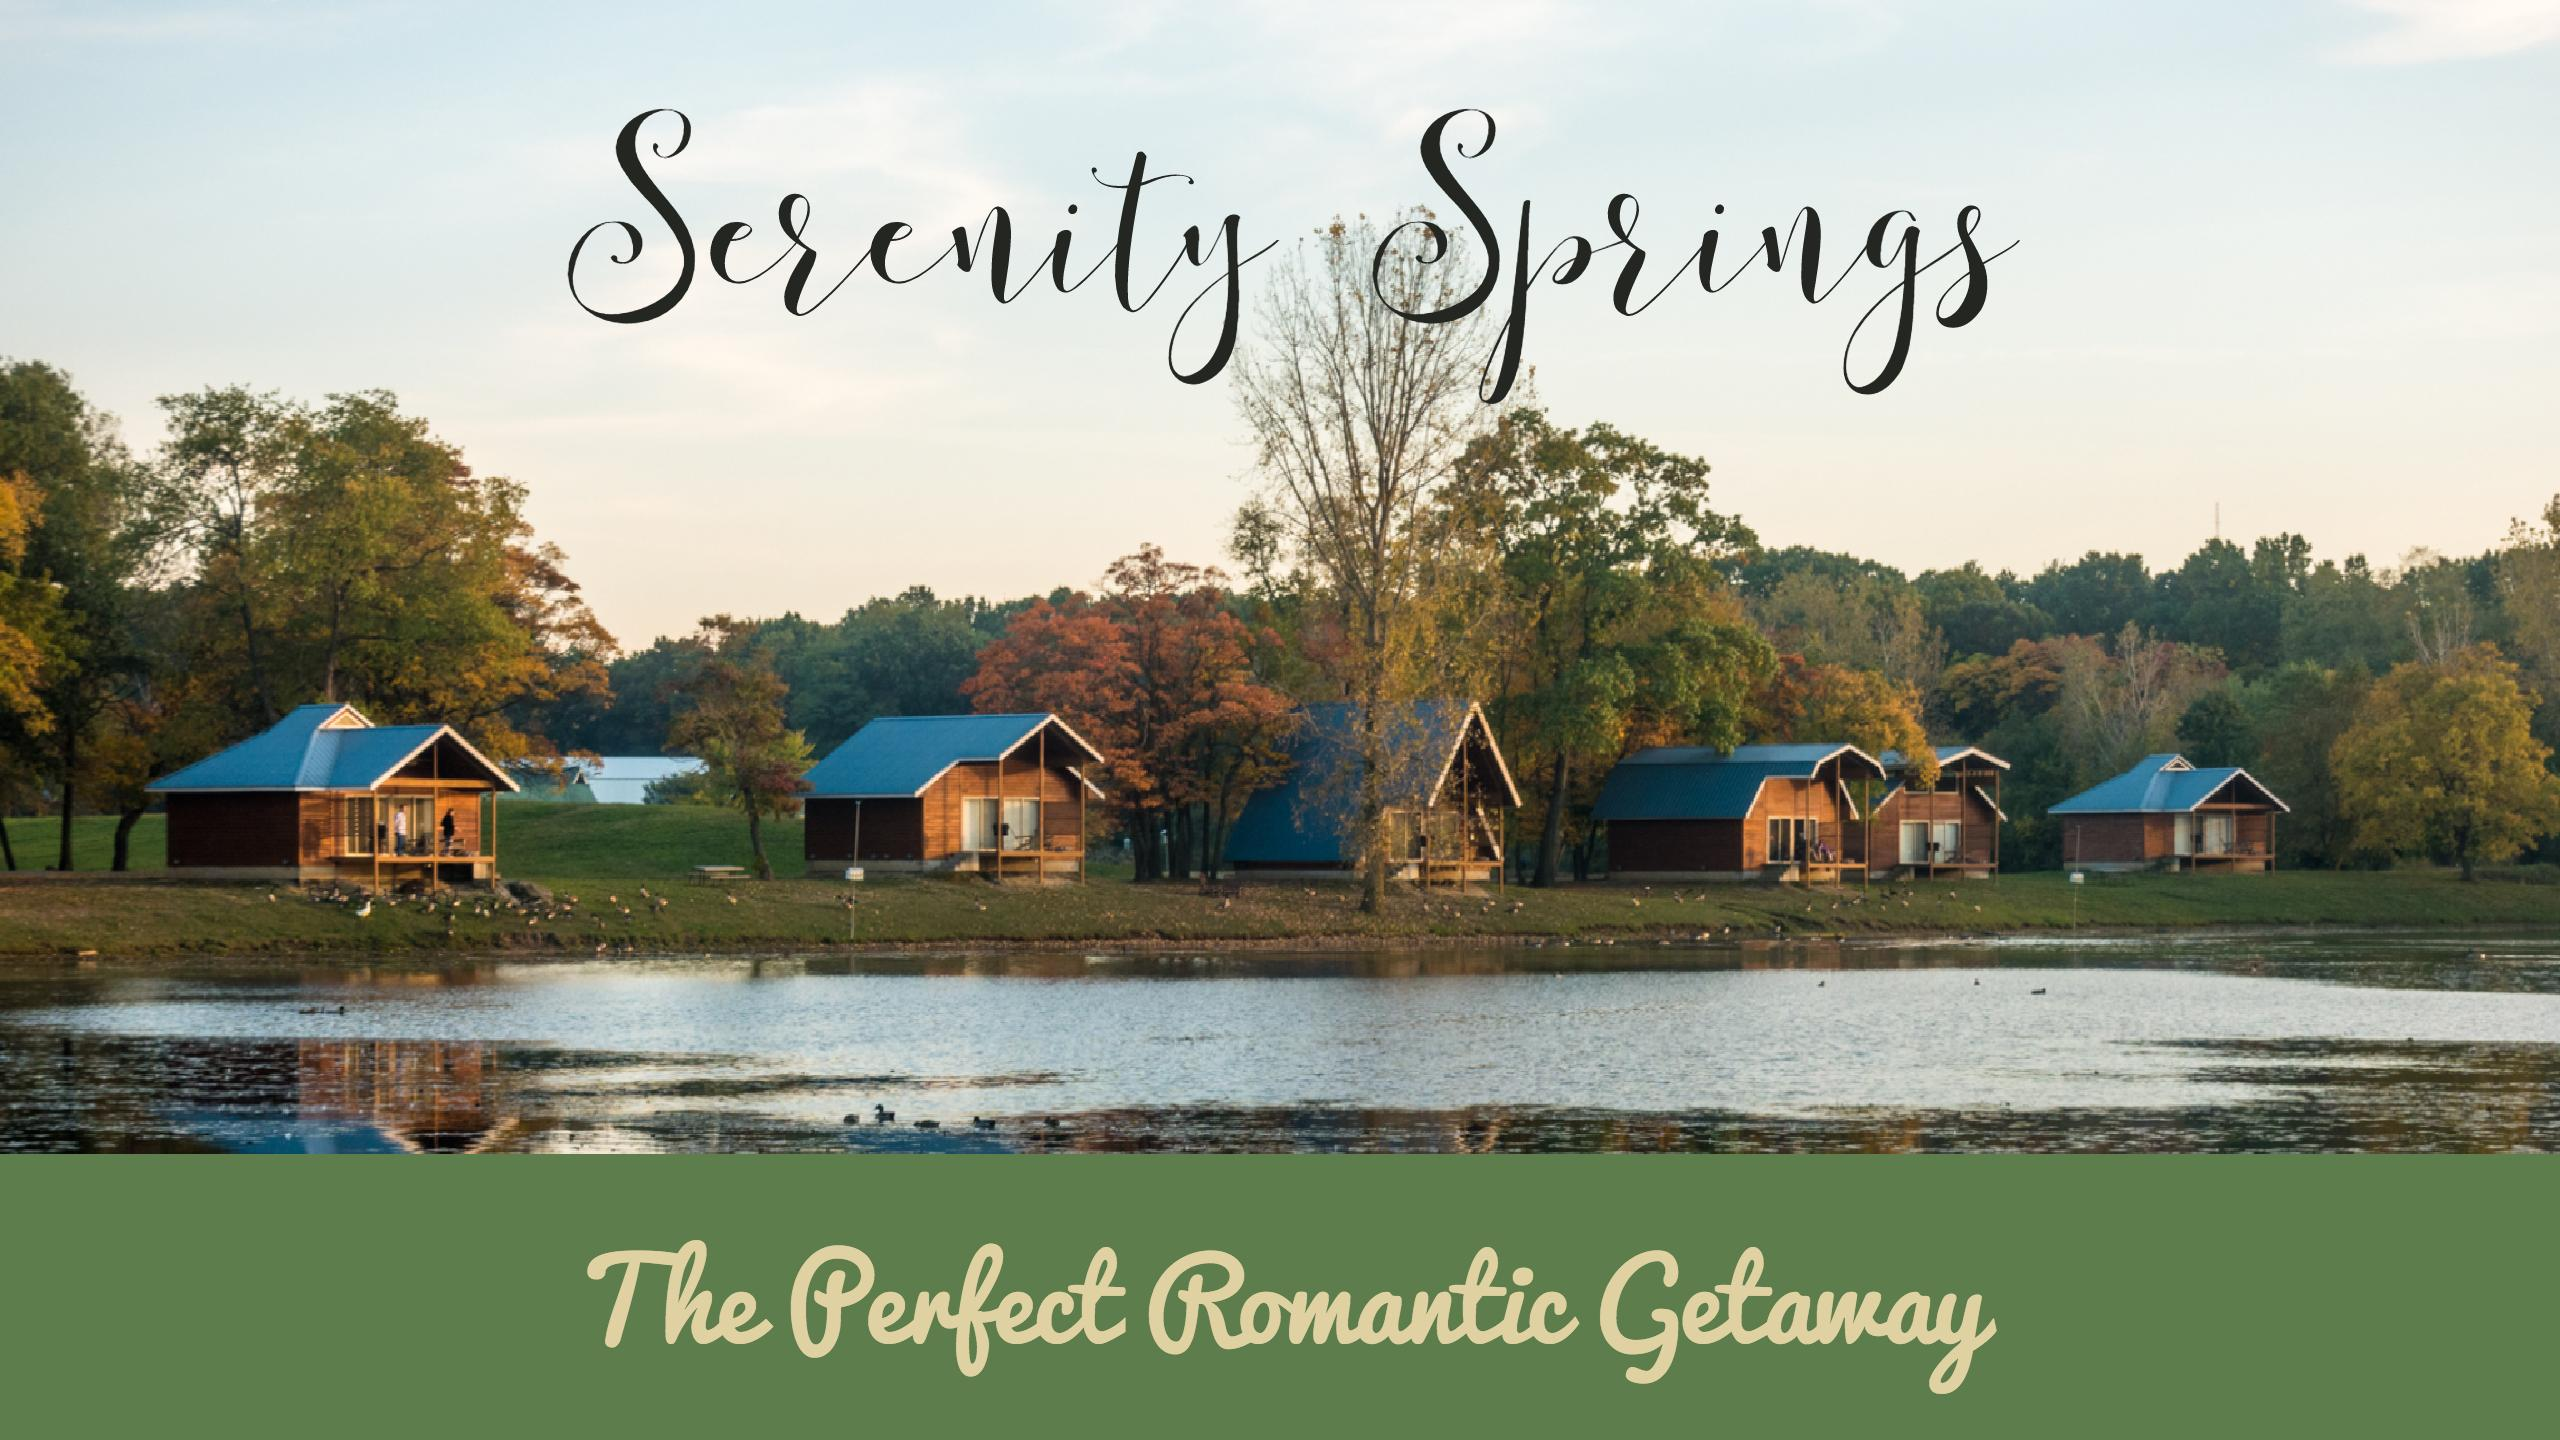 Serenity Springs: The Perfect Romantic Getaway for celebrating an anniversary or any occasion.  #travel #romantic #getaway